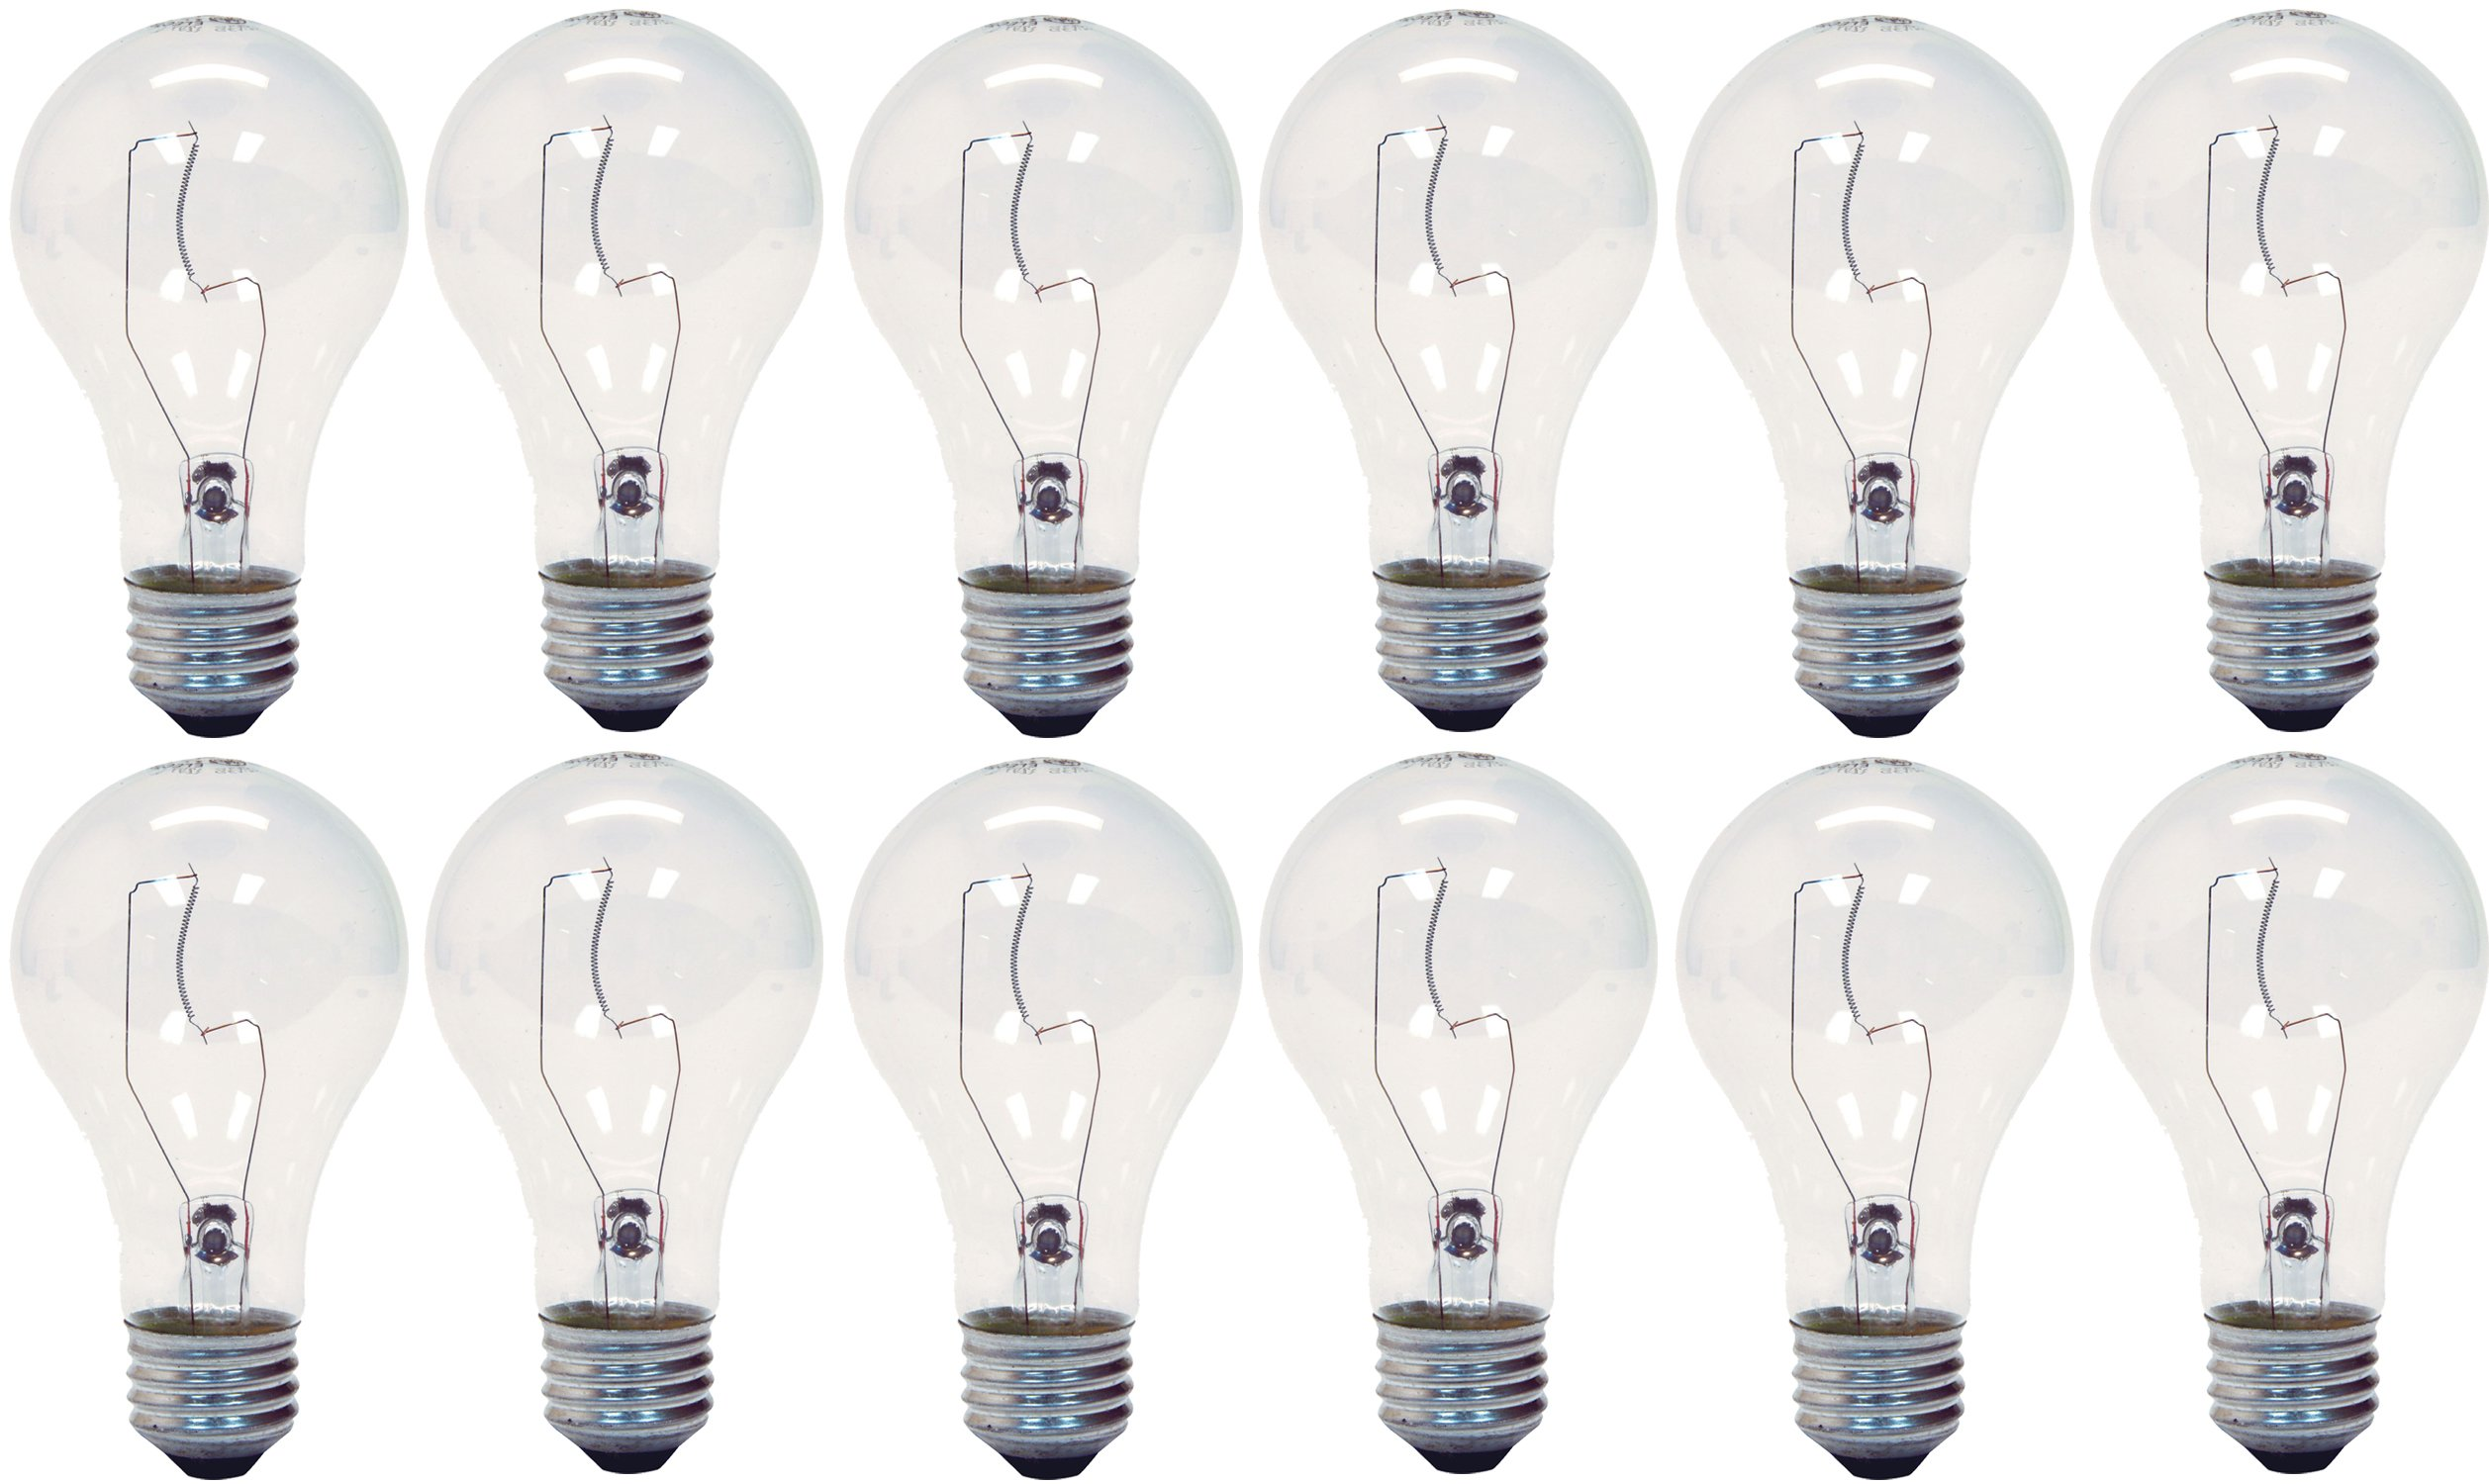 GE Lighting 16069 Crystal Clear 200-Watt 3780-Lumen A21 Bright Reader Light Bulb, 12-Pack